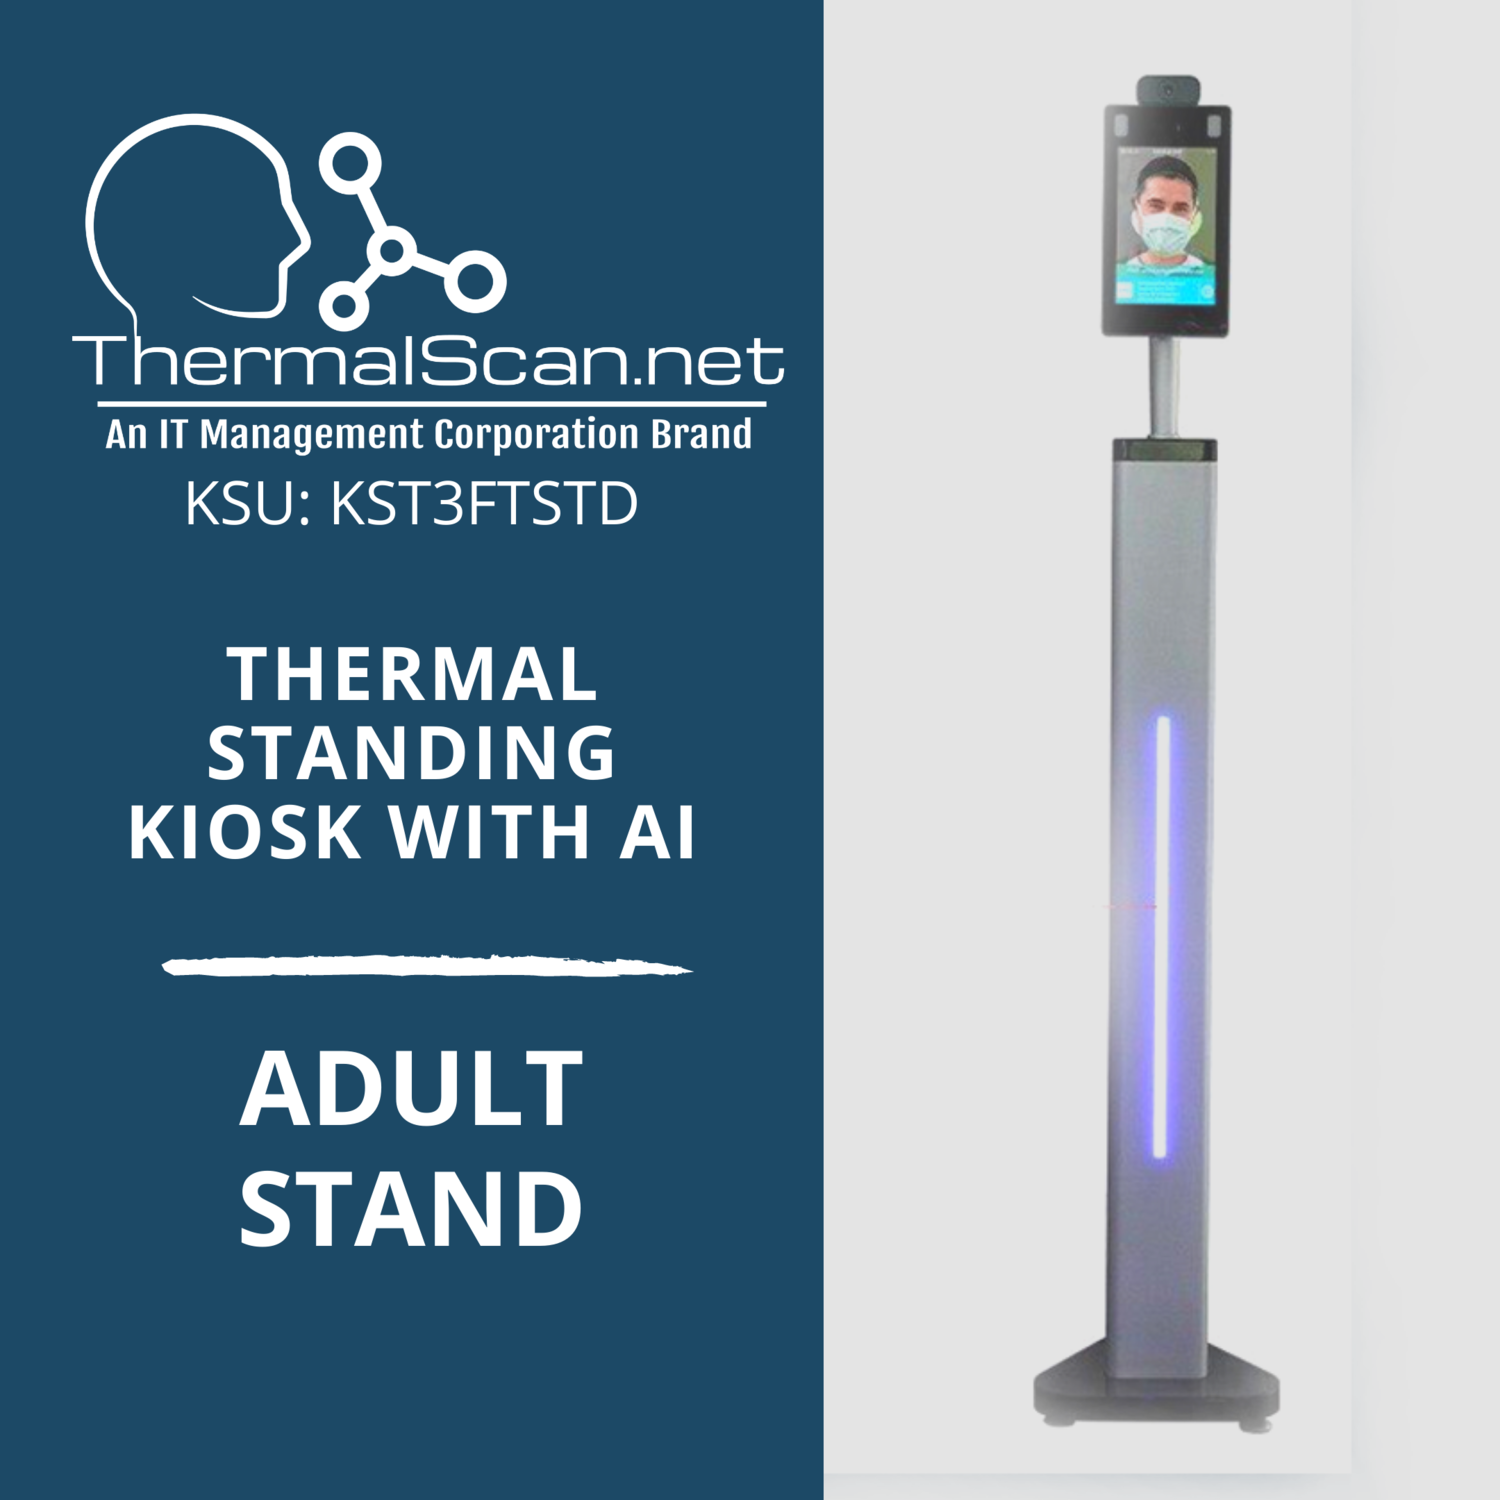 Adult Stand for Temperature Scanning Kiosk